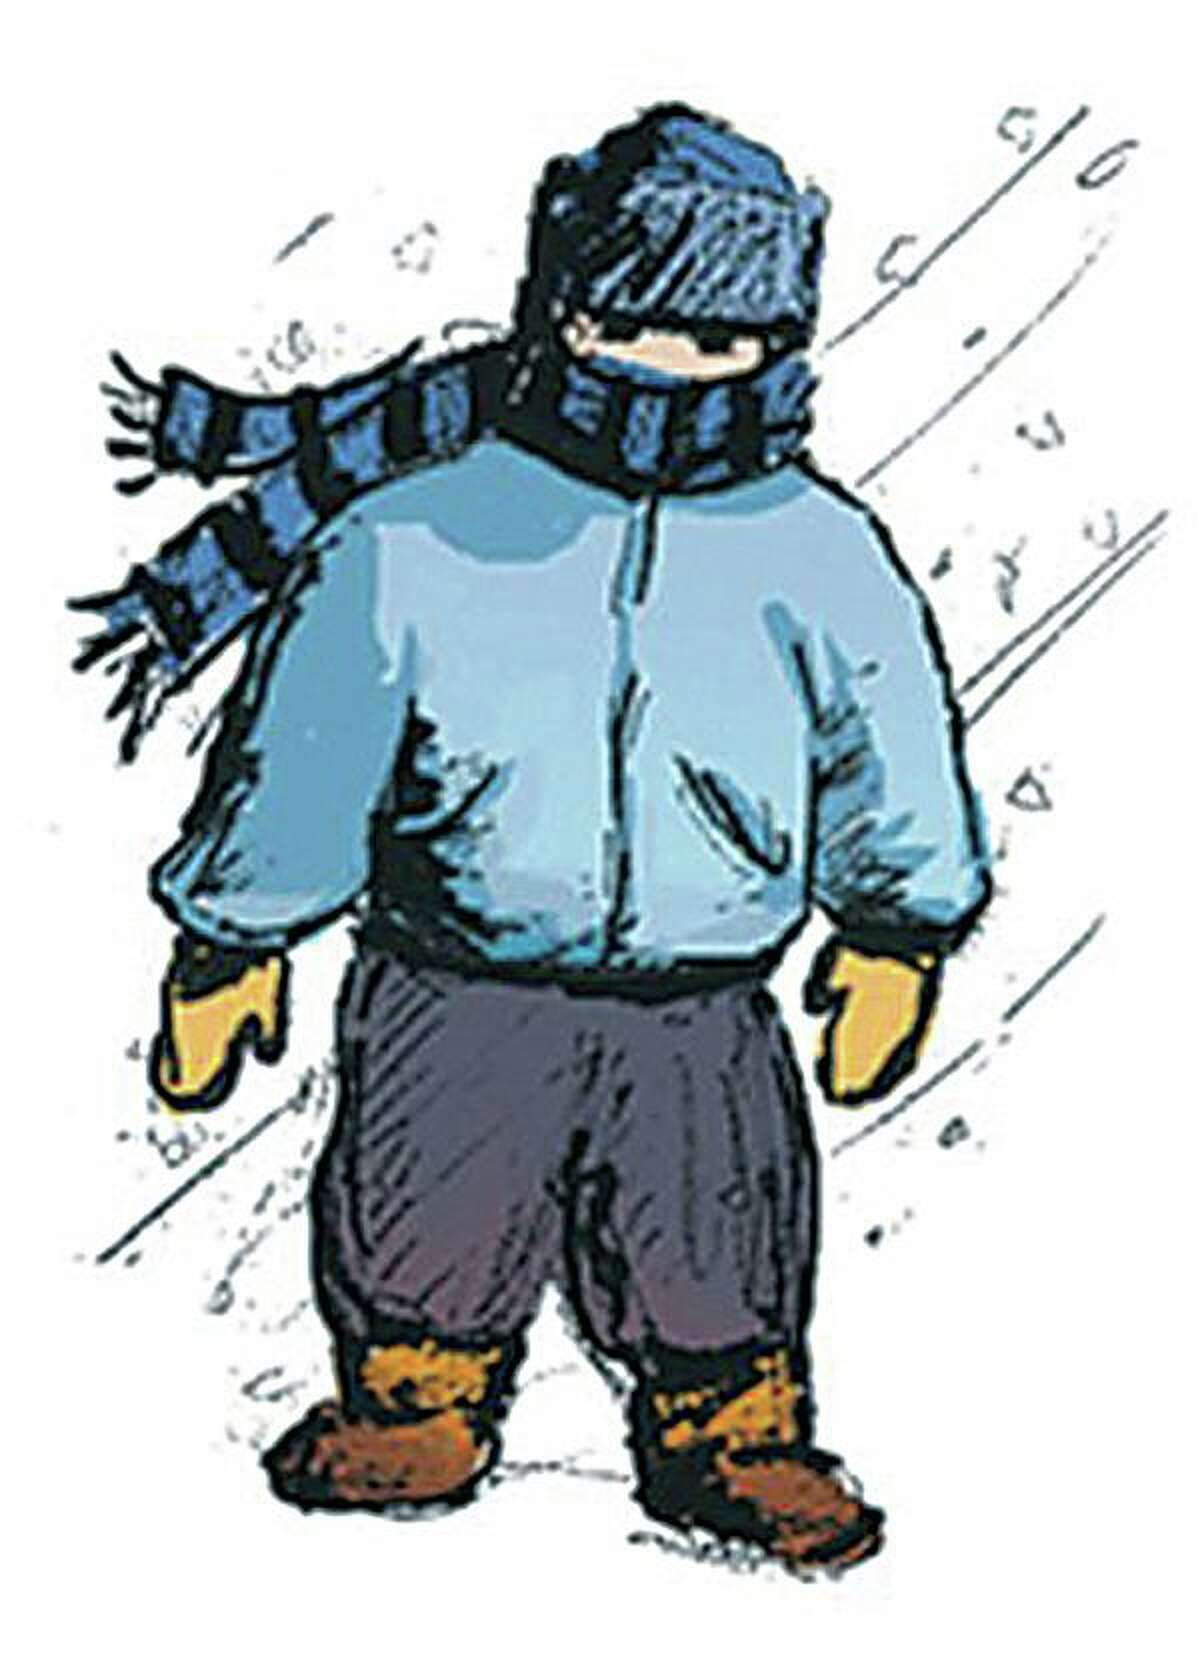 Warm the Children, sponsored by the Middletown Kiwanis Club, takes donations to buy warm winter clothing for families in need.